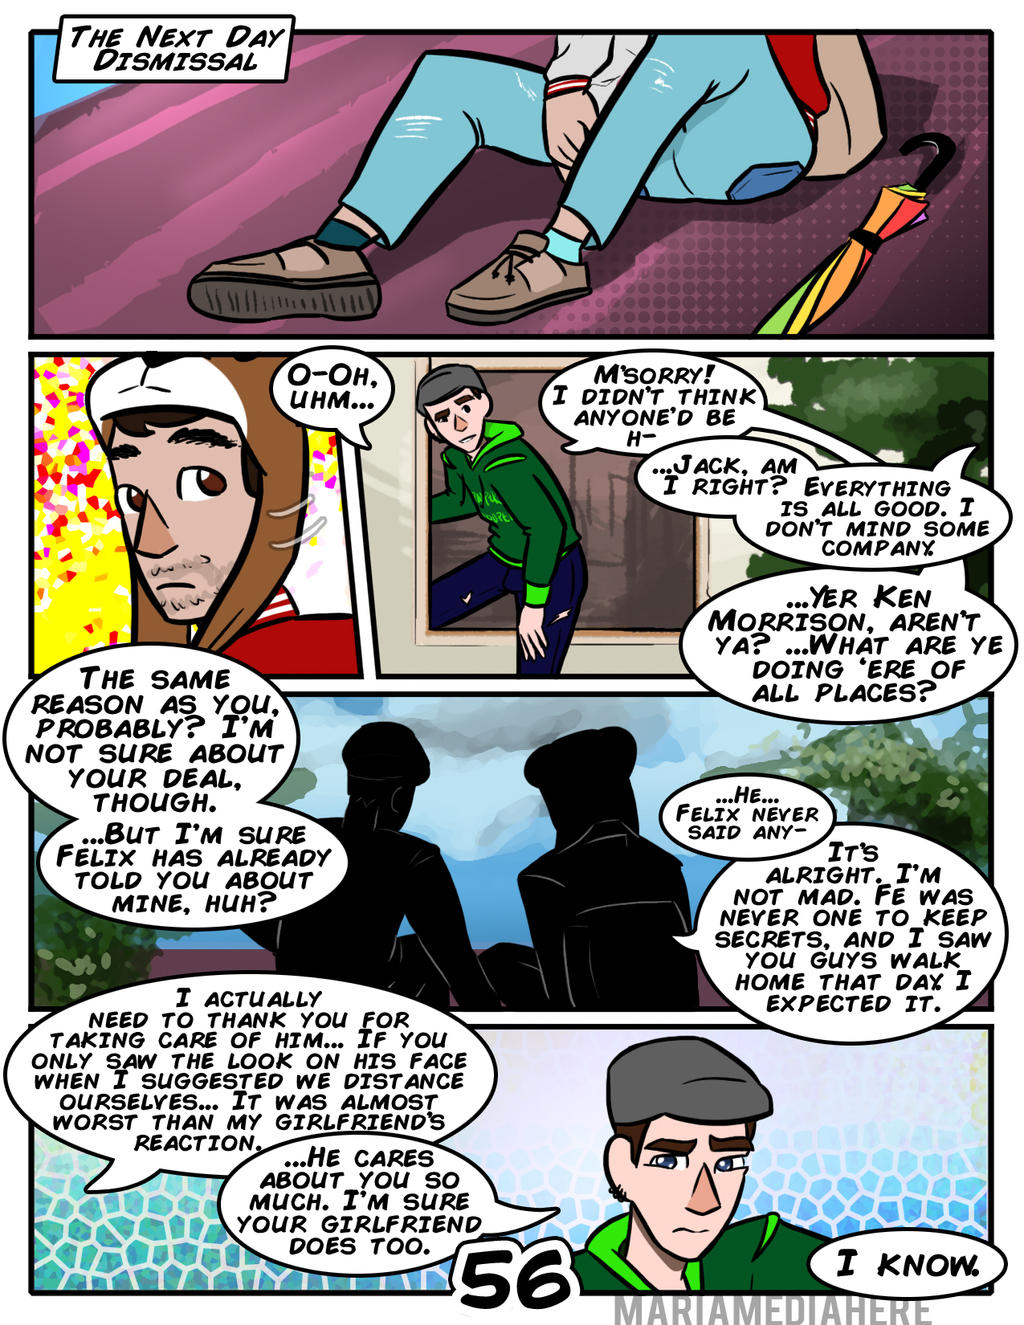 Rooftop (SEPTICPLIER) - [PAGE 56] by MariaMediaHere on DeviantArt